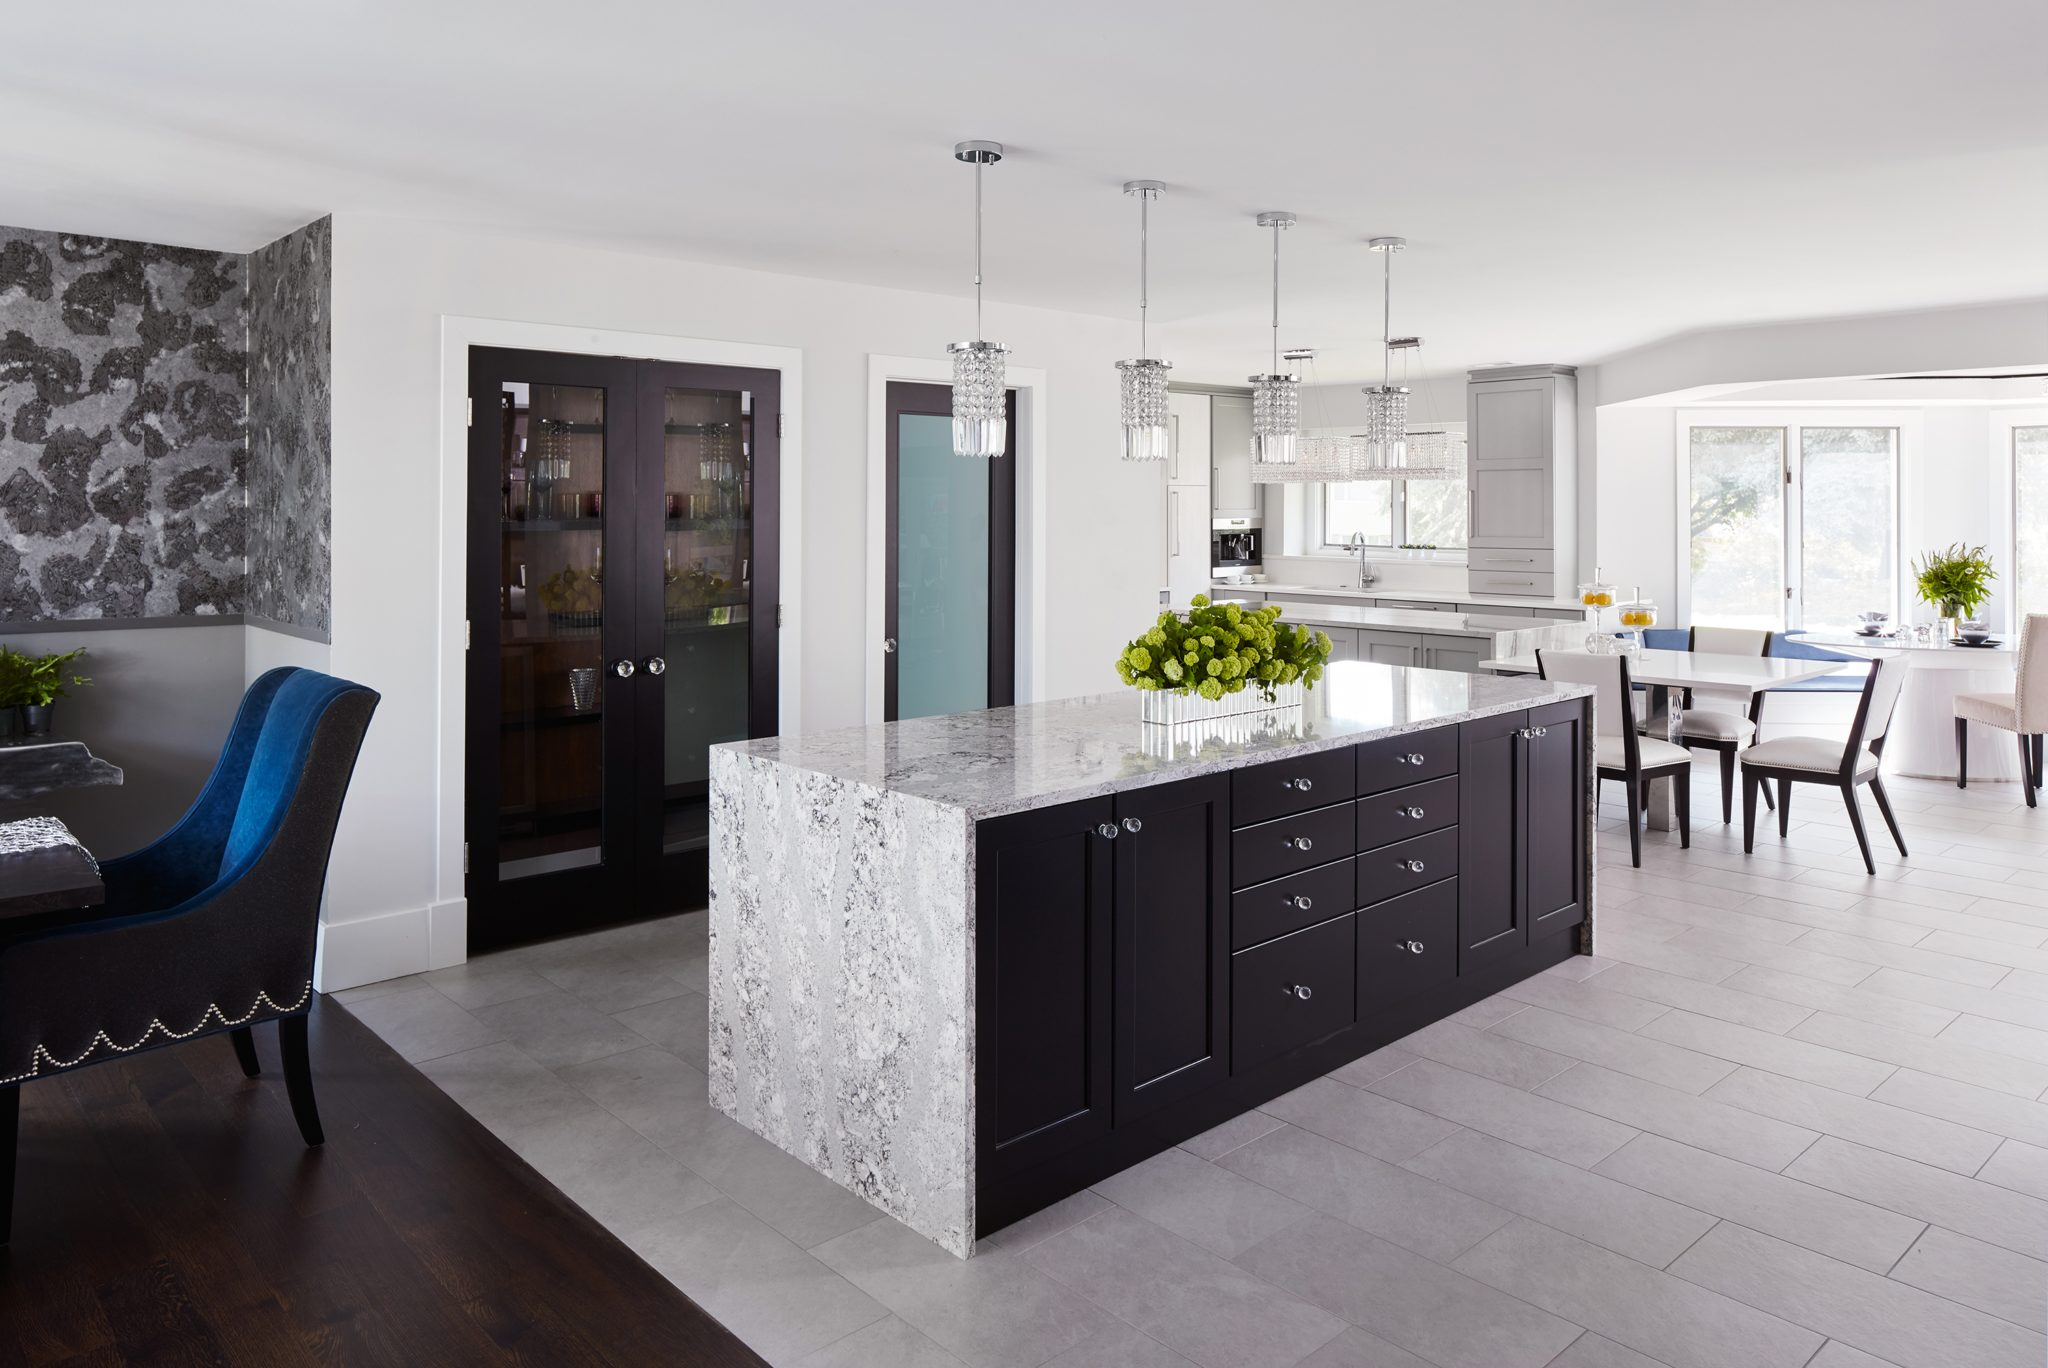 Glamorous Kitchen Full Rehab - Elegant Waterfall Countertop with Mitered Edge by Inspired Interiors